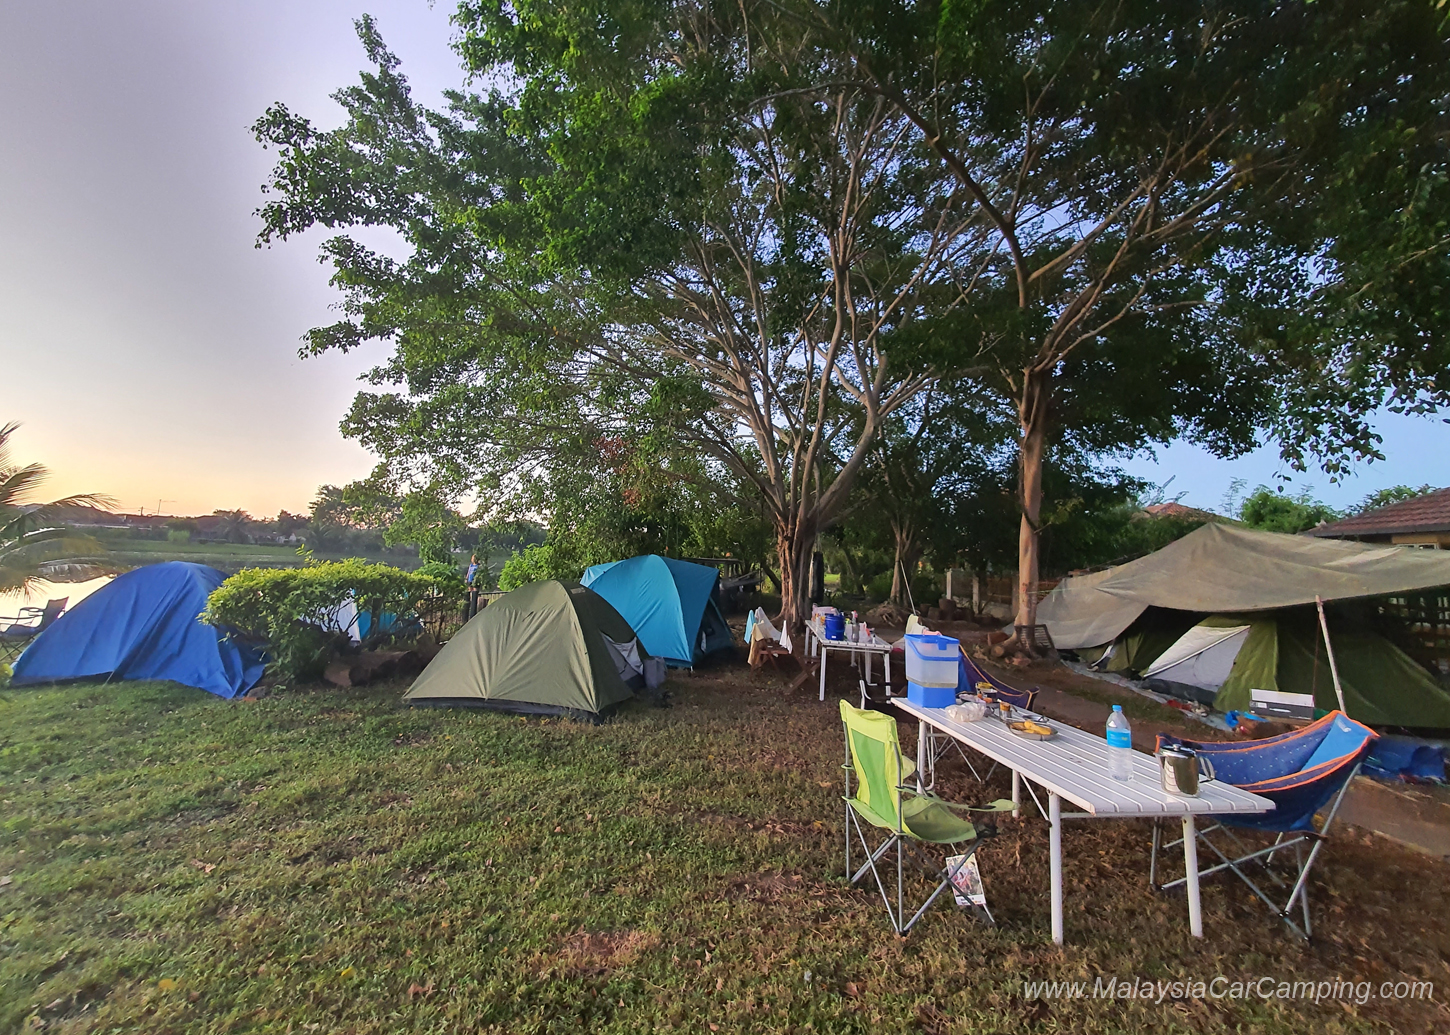 camping_with_dogs_puppy_lakeside_camping_malaysia_car_camping_malaysia_campsite-26